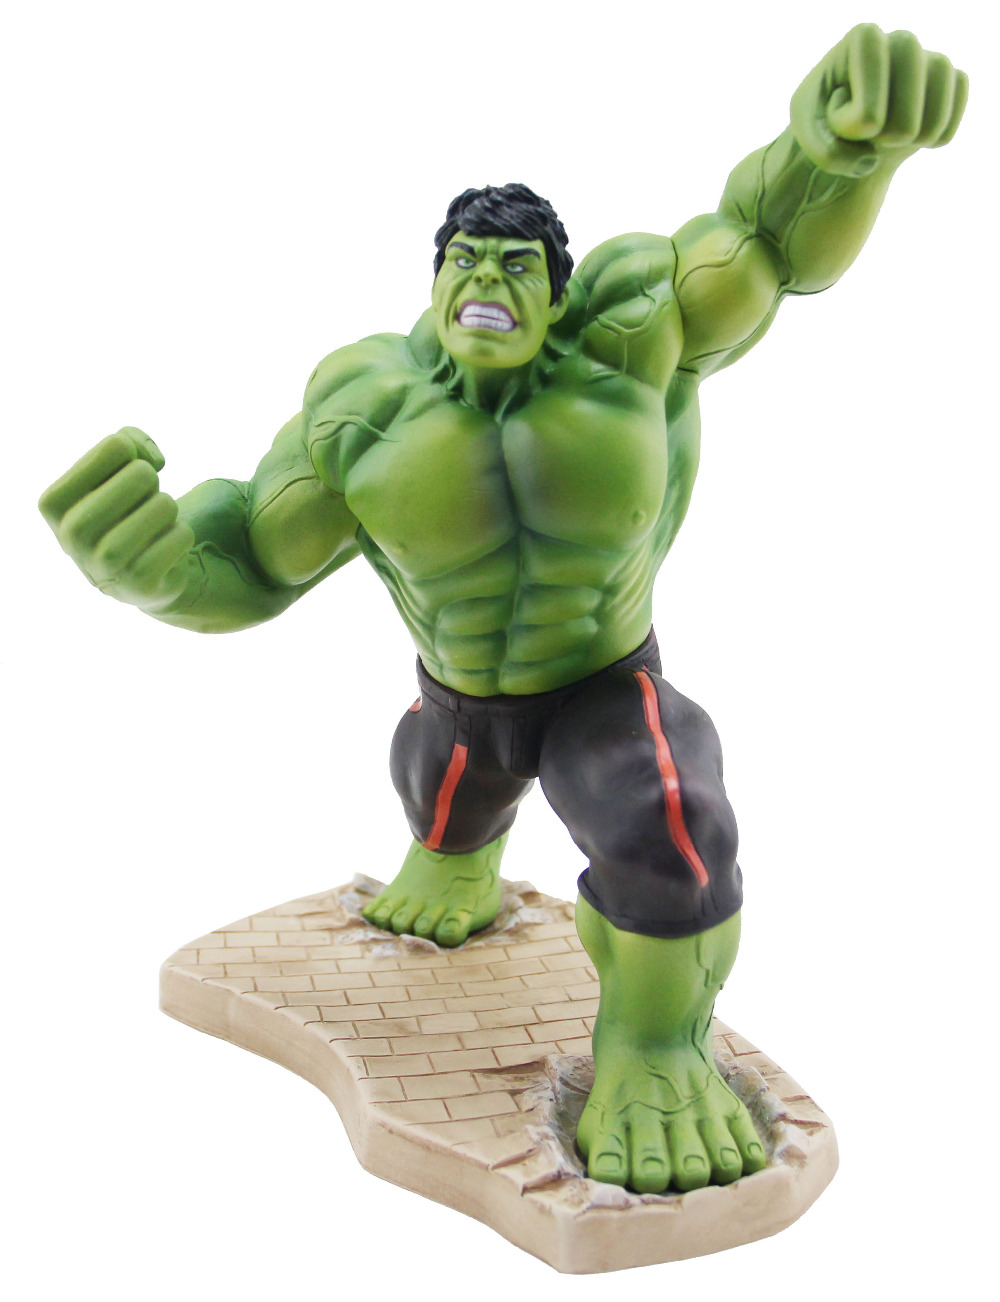 NEW hot ! 20cm avengers Super hero hulk pvc action figure toys Christmas gift doll